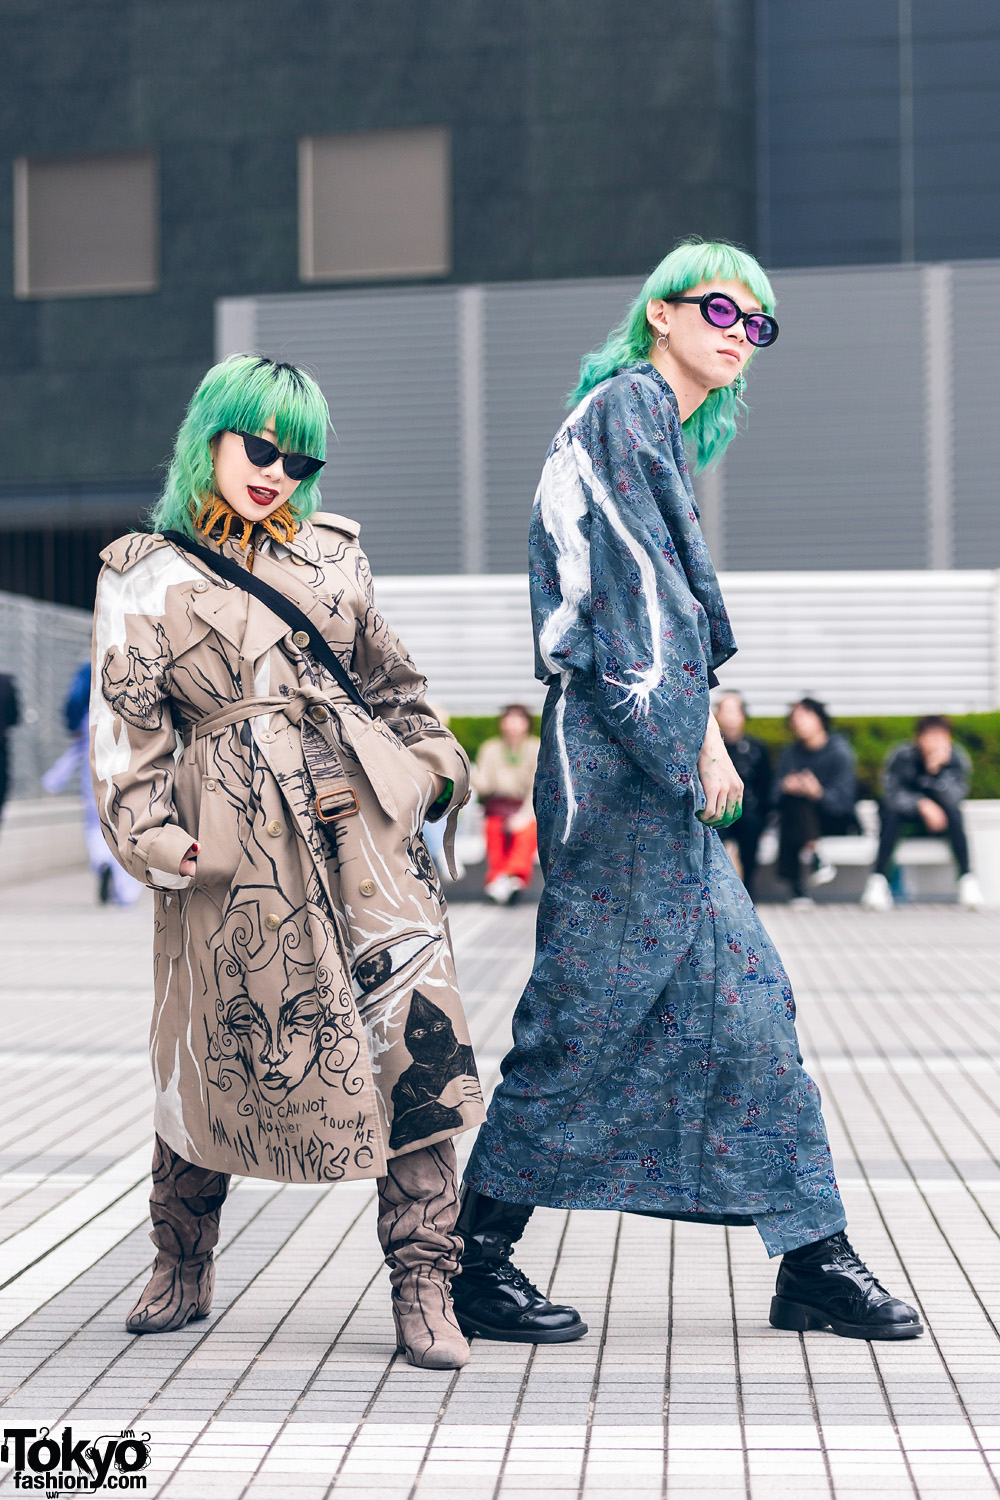 Hand Painted Mind Infection Street Fashion in Tokyo w/ Trench Coat, Skeletons Kimono, Givenchy, Gucci & Dr. Martens